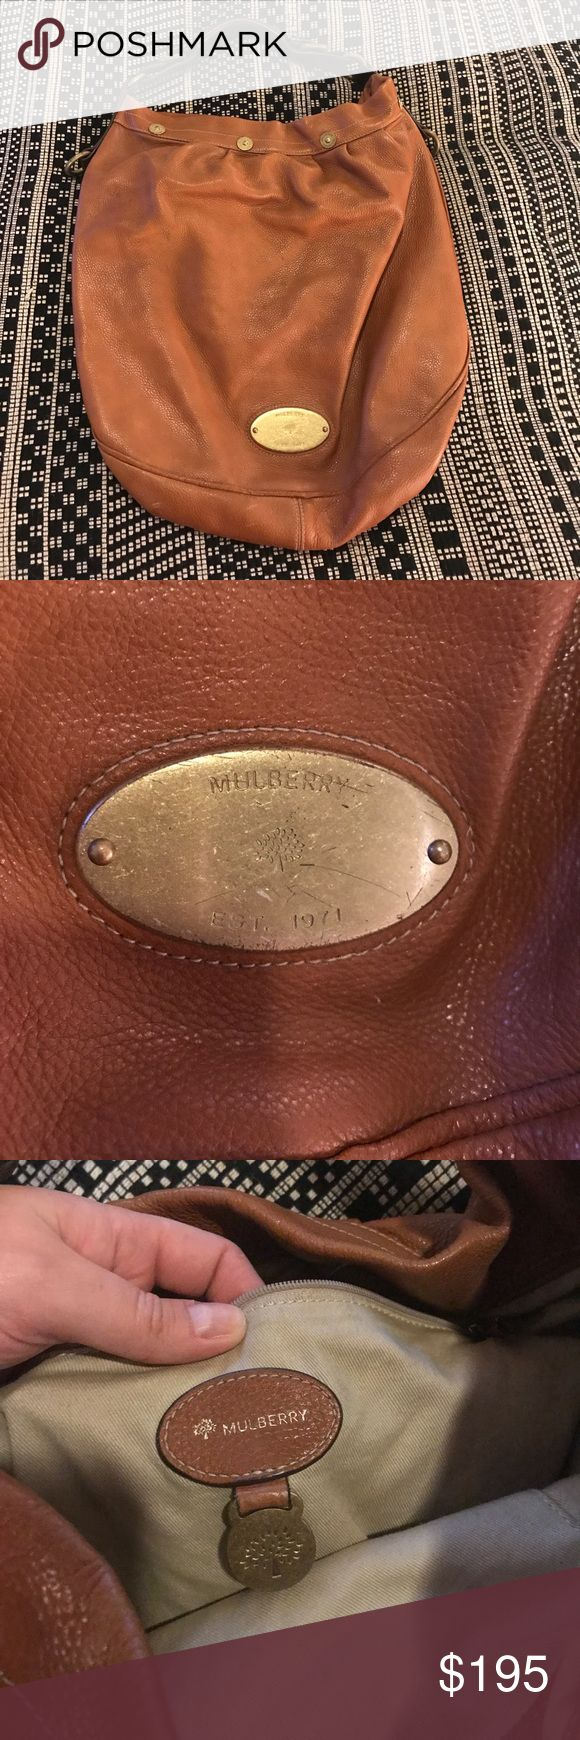 Mulberry Hobo Bag Leather Hobo Bag. Leather is in great condition, inside of Bag clean. Looks great on!! Mulberry Bags Shoulder Bags